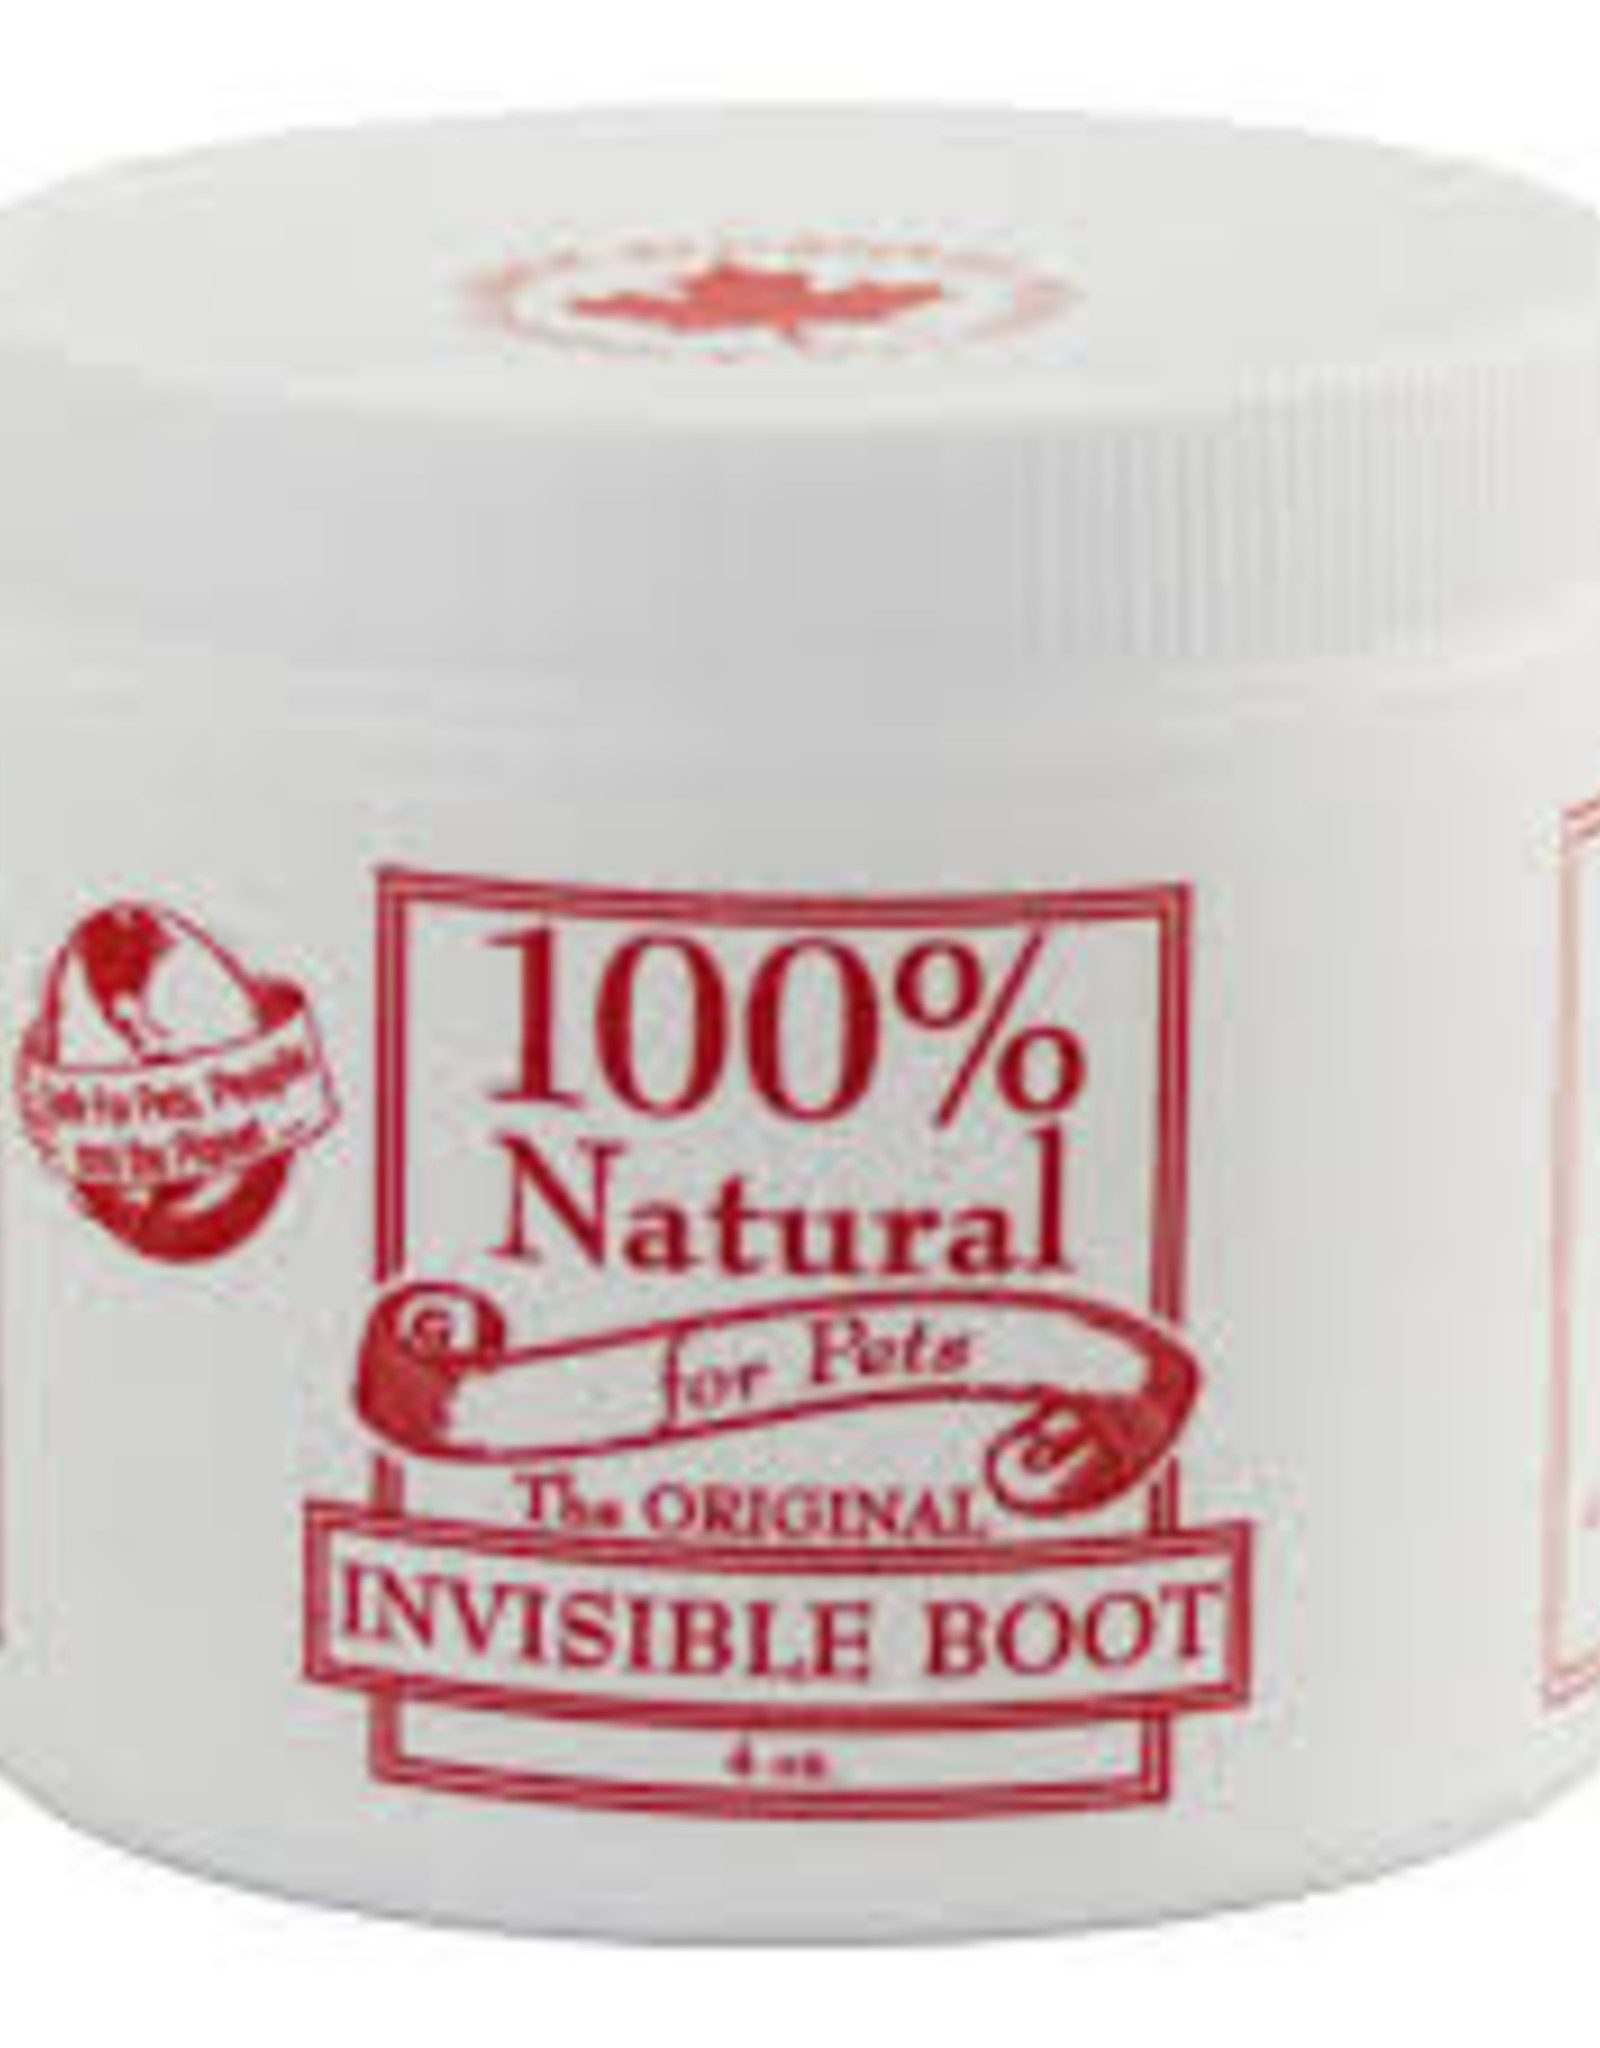 100% Natural for Pets 100% Natural Invisible Boot 4 oz.